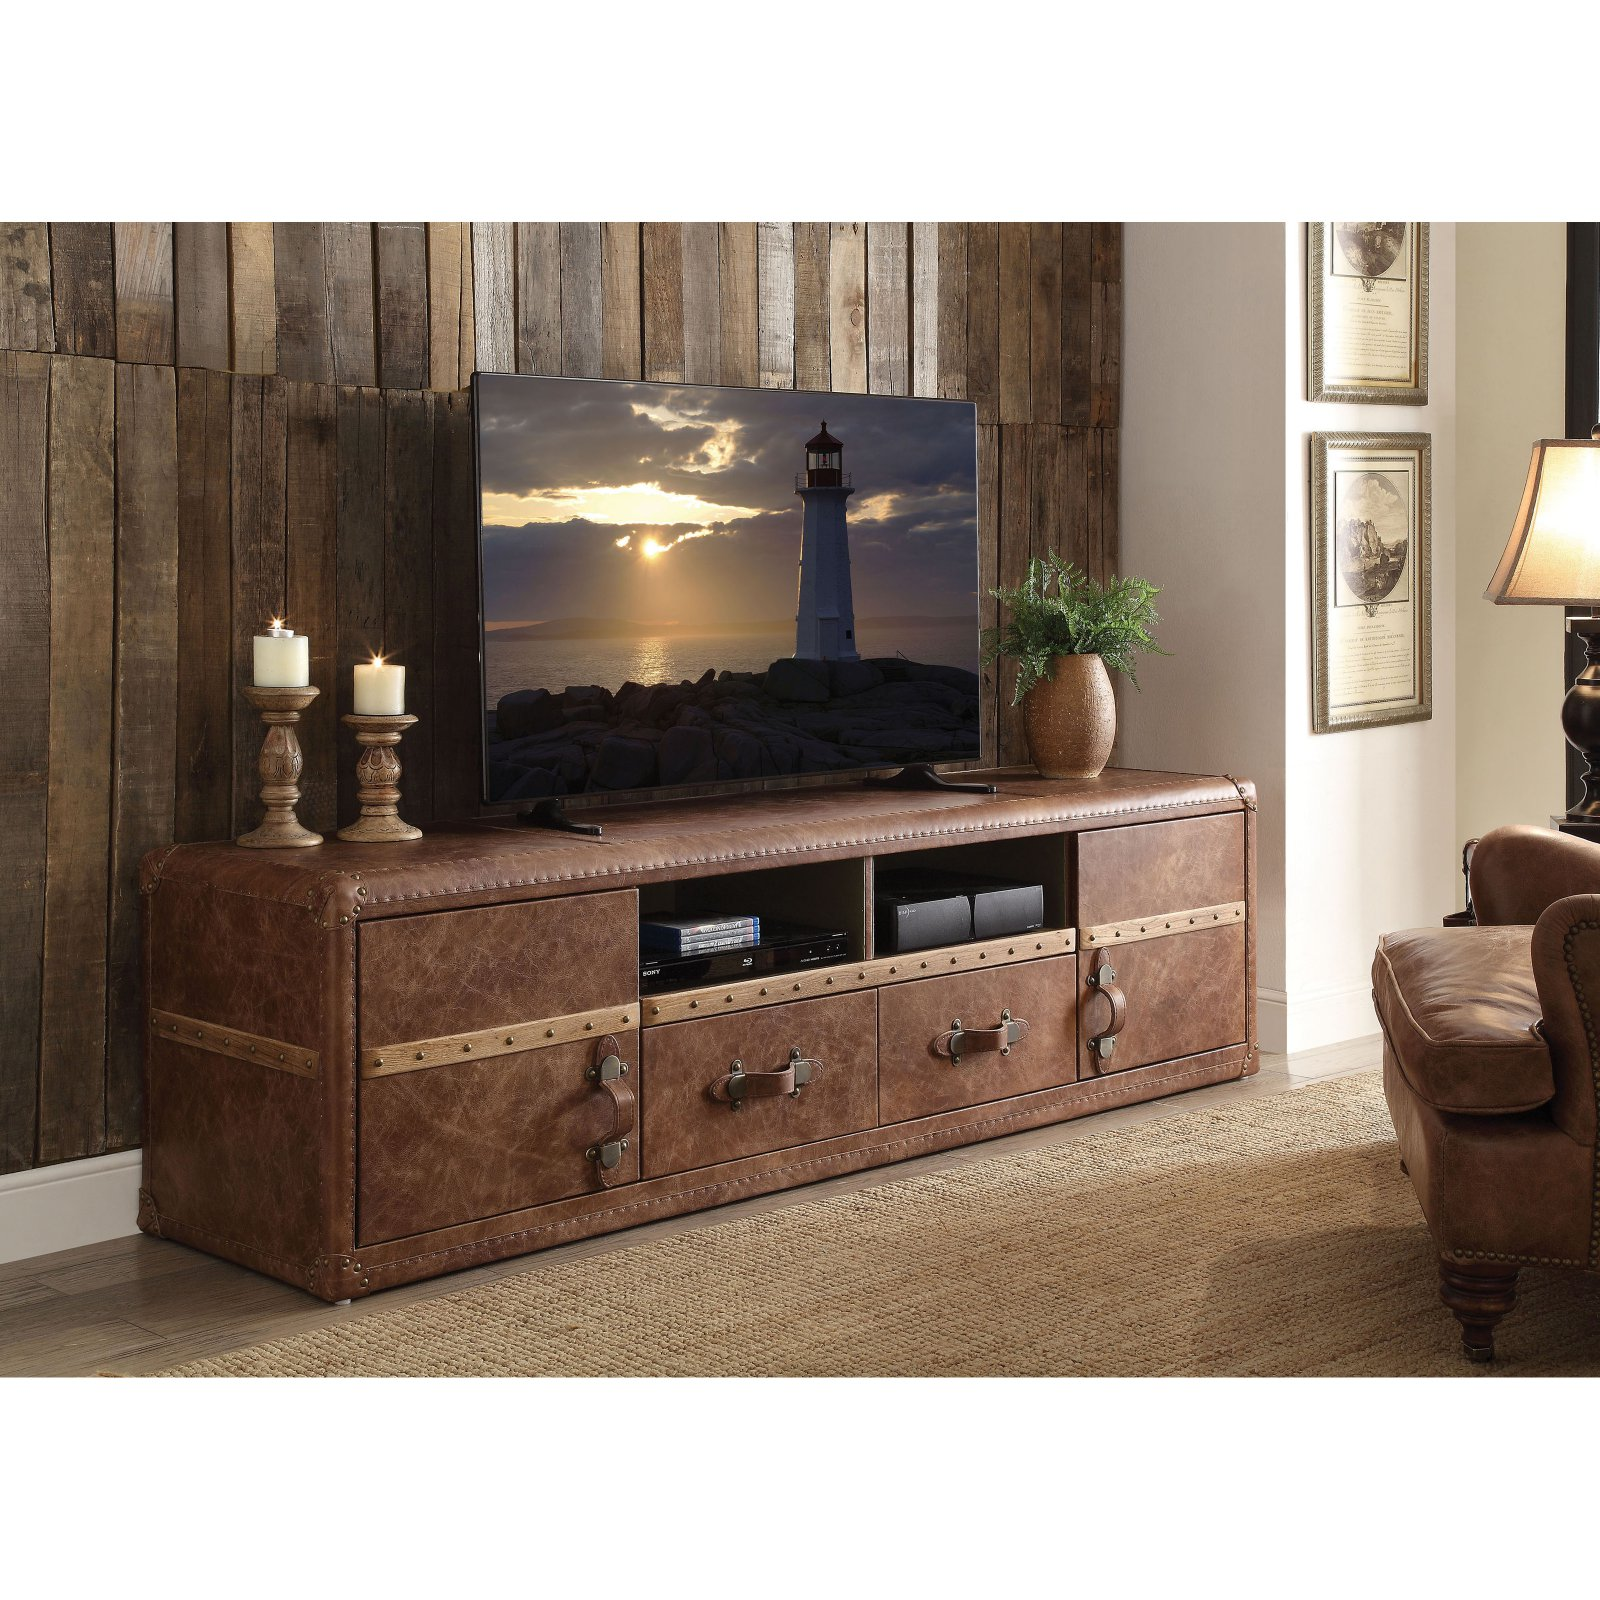 "Acme Aberdeen TV Stand for TVs up to 70"", Vintage Dark Brown Top Grain Leather"